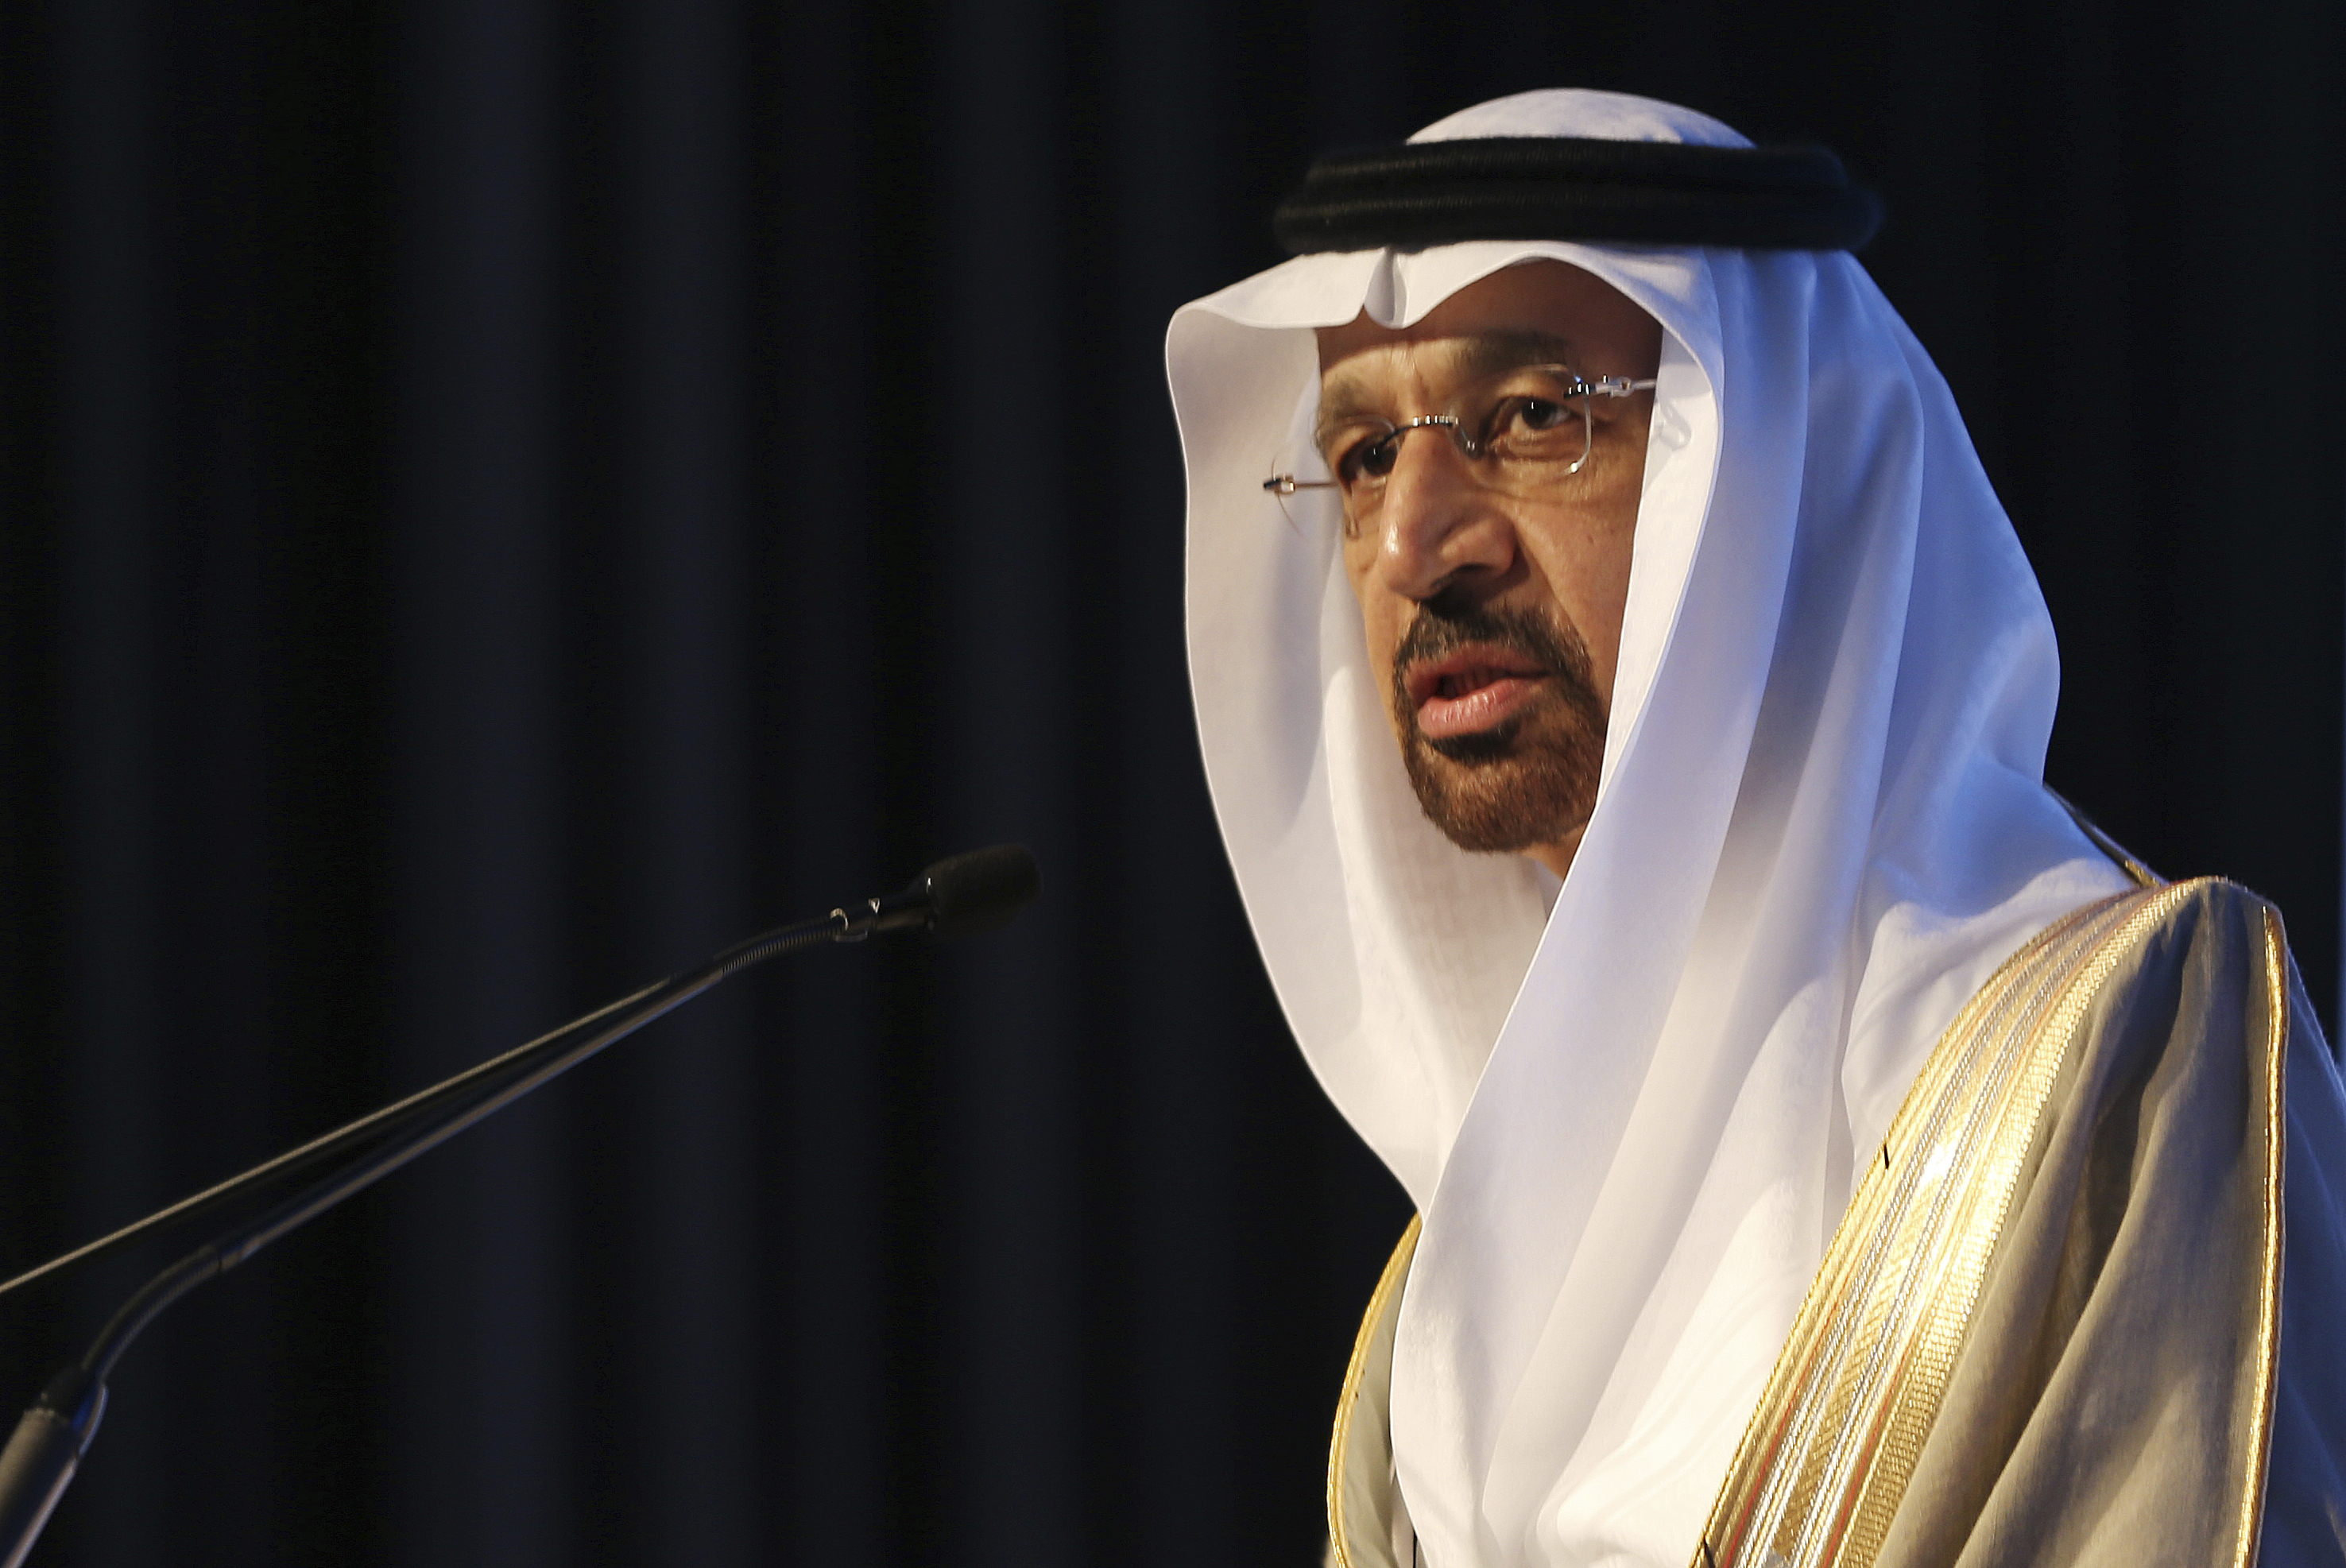 Emirates Oil In this Jan. 12, 2017, photo, Saudi's Oil Minister Khalid al-Falih, speaks during an Energy Forum in Abu Dhabi, United Arab Emirates. On Thursday, April 20, 2017, Al-Falih suggested that production cuts agreed to by OPEC members and countries outside of the cartel may need to continue to help shore up crude oil prices.